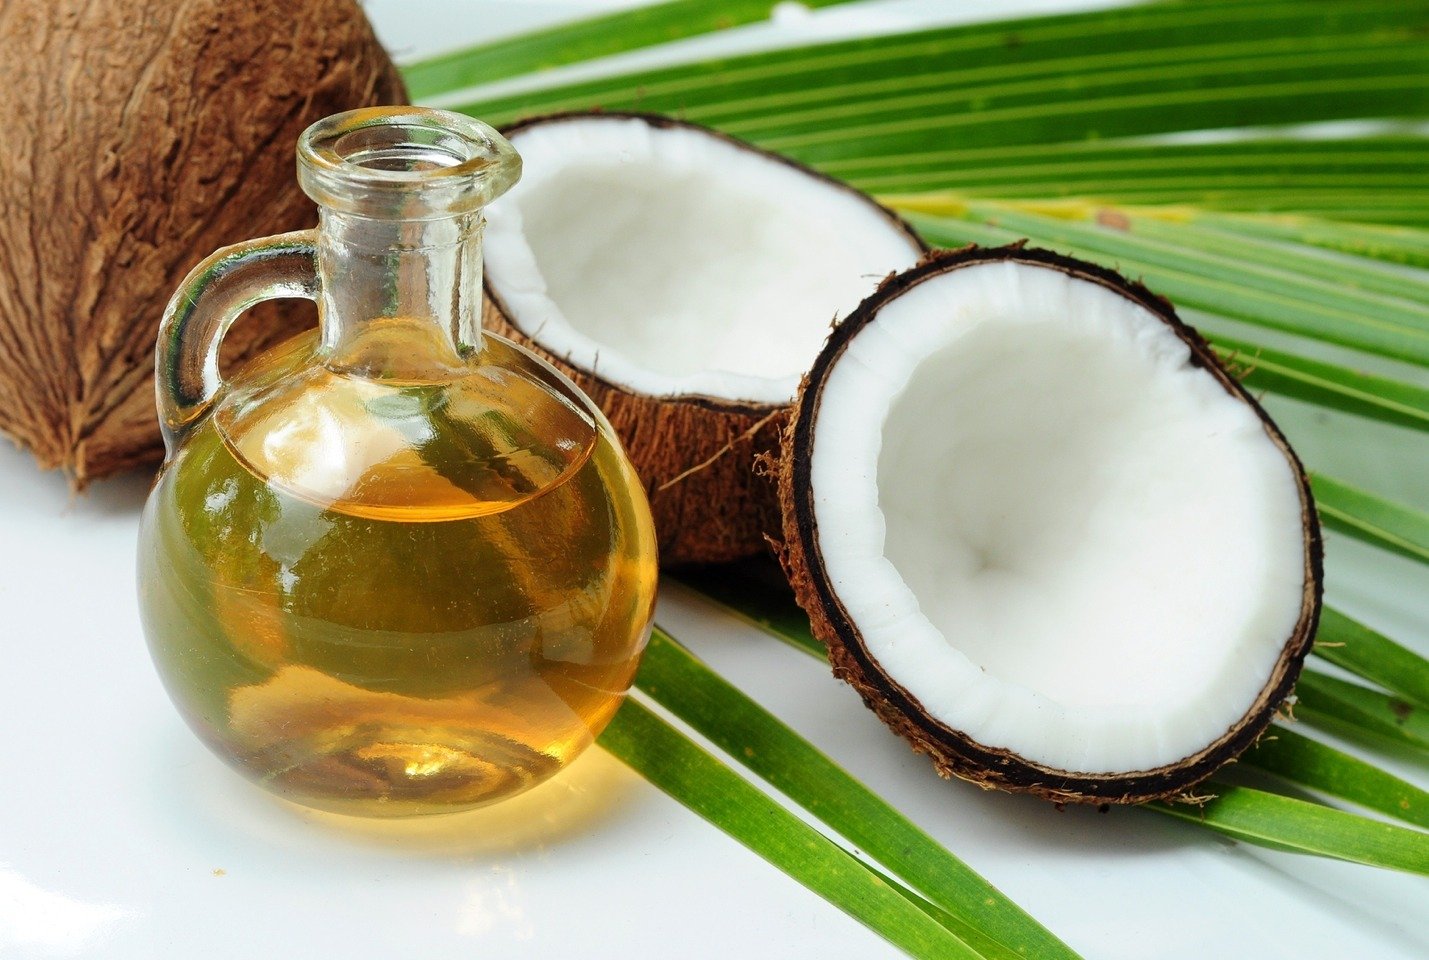 Get yourself some coconut oil I buy the hard macro brand from Woolworth's and apply it to all of your hair to condition it. Leave it on for a few hours then wash it out with your favourite shampoo and conditioner.